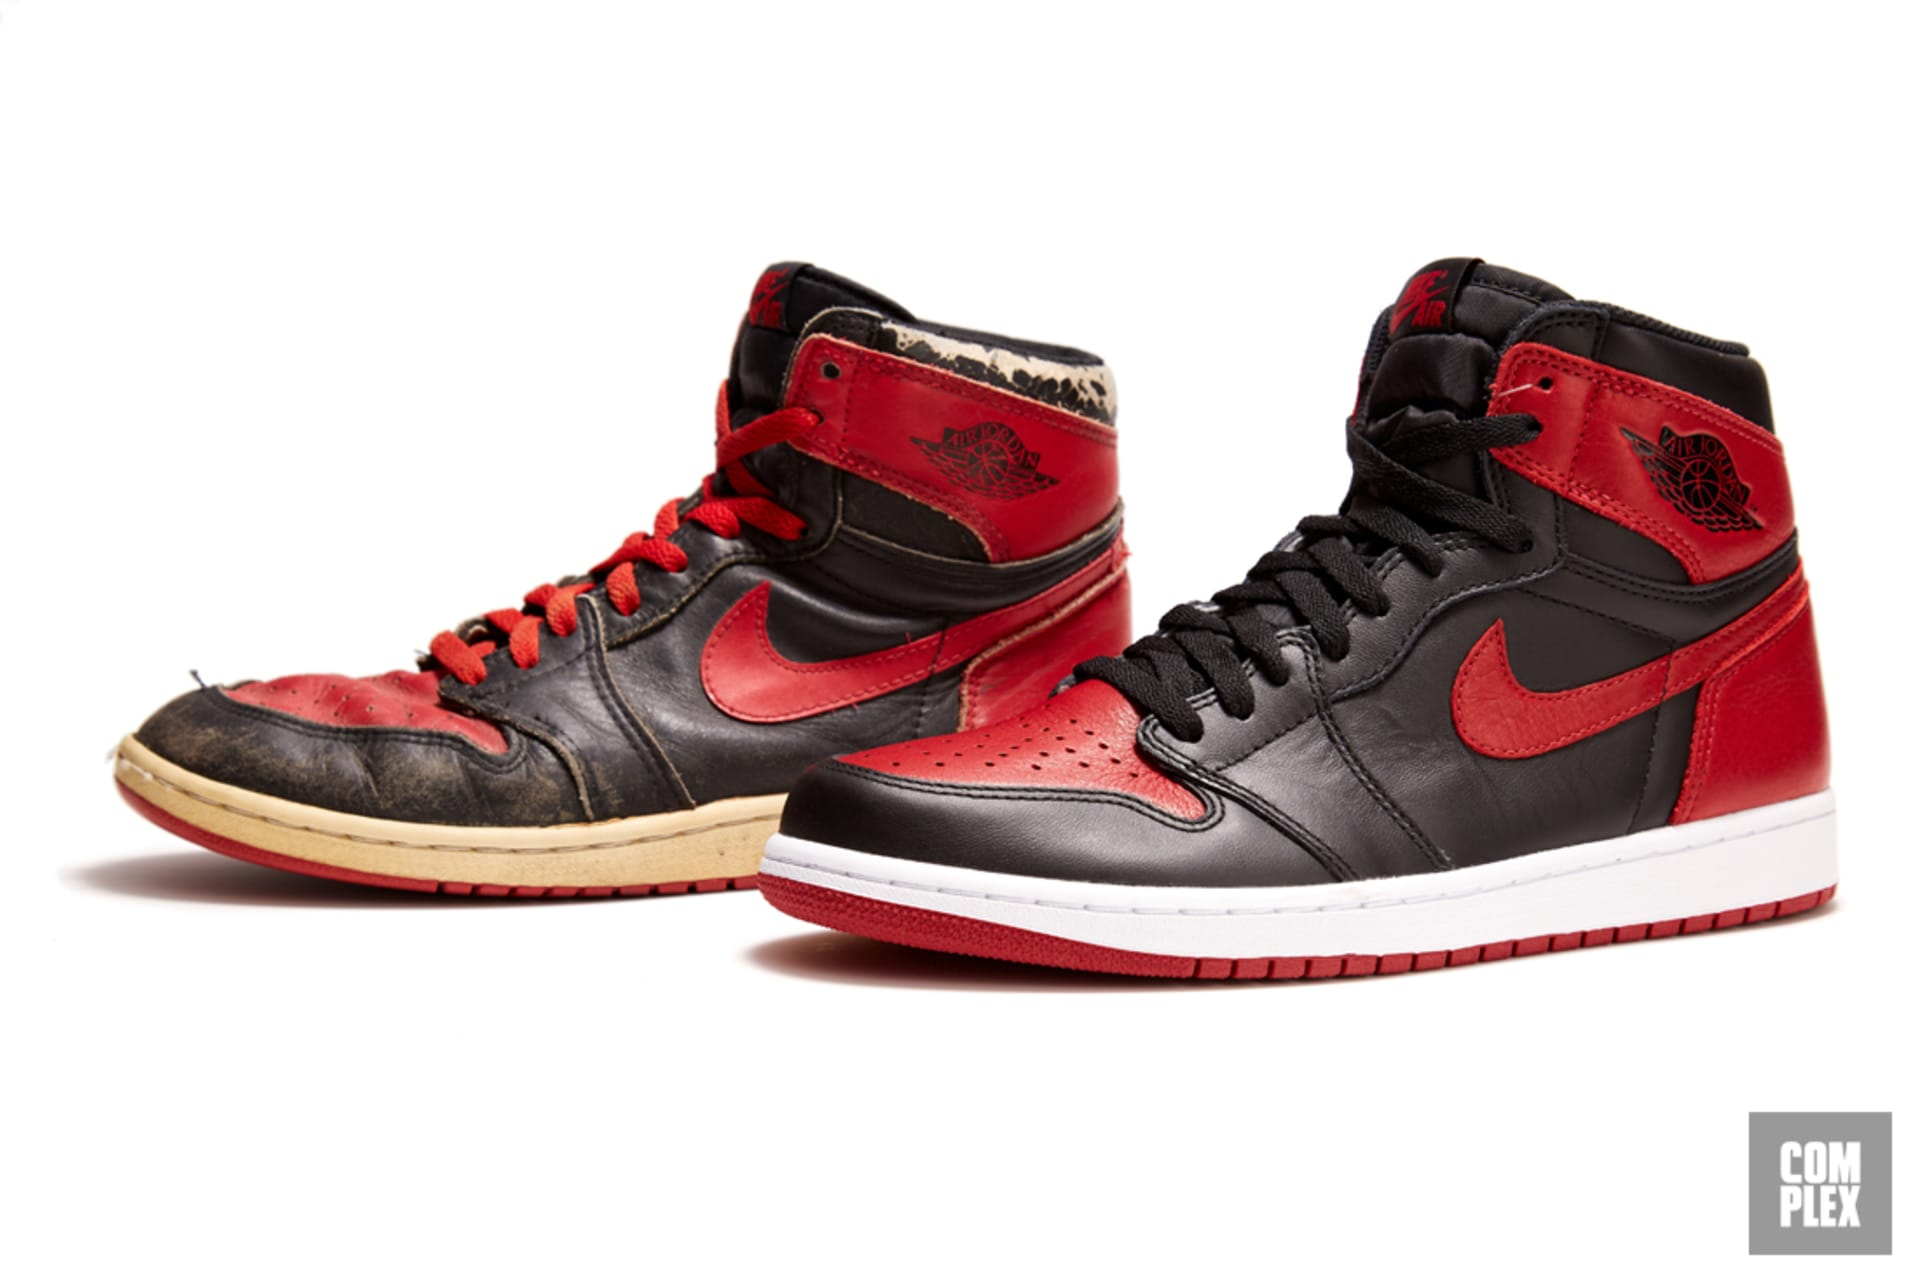 3c159c7cc8d23b The Evolution of the Black and Red Air Jordan 1